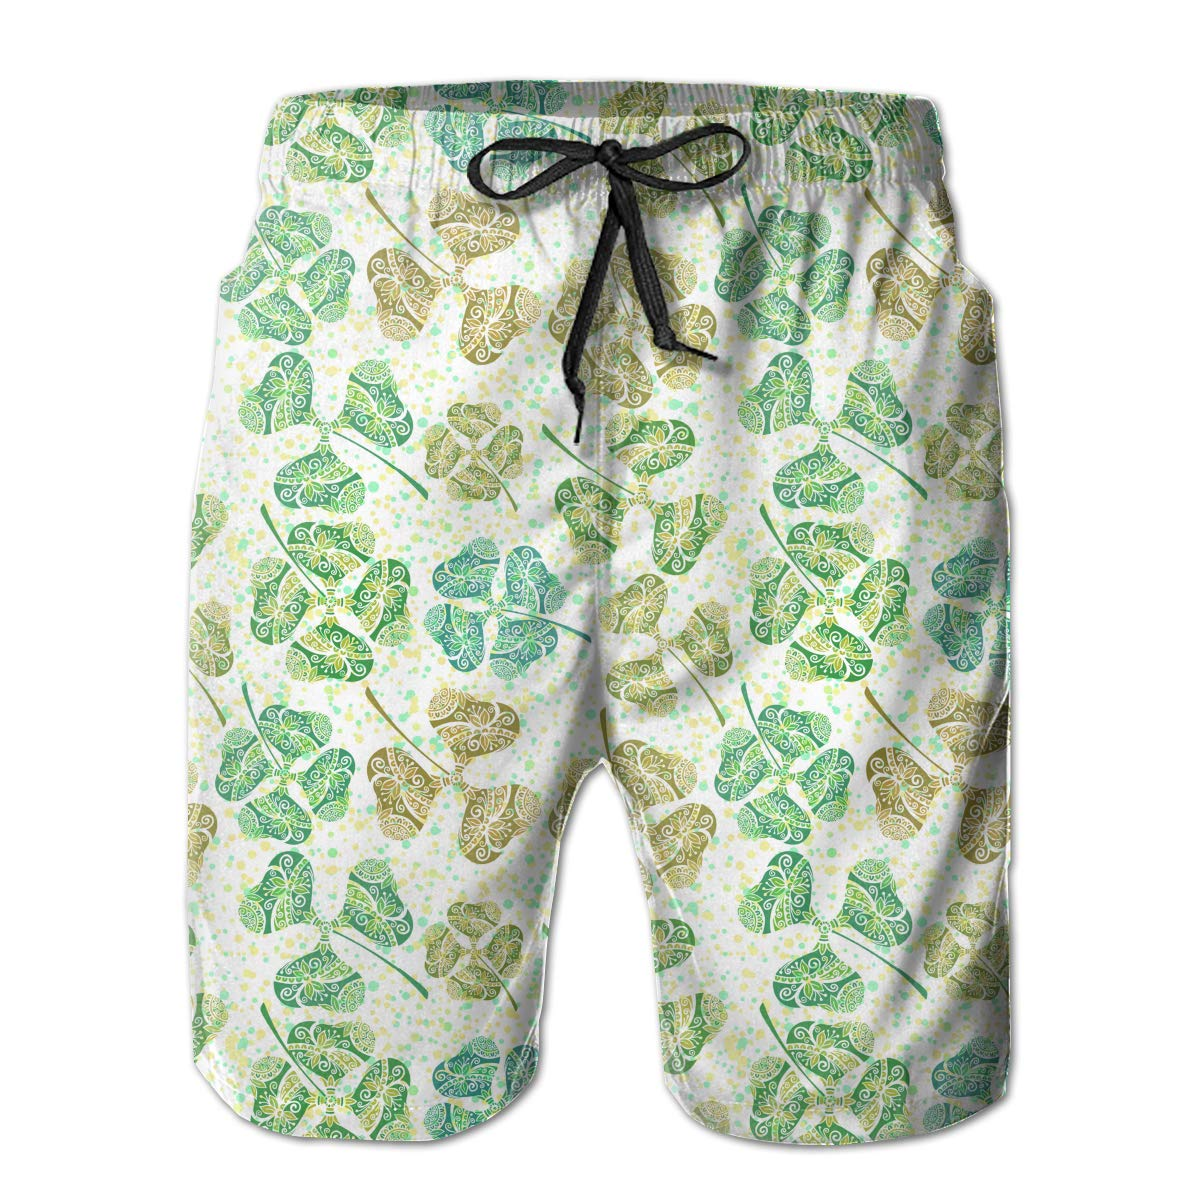 Mens Casual Swim Trunks St Patricks Day Clover Flower Colorful Beach Shorts with Elastic Waist